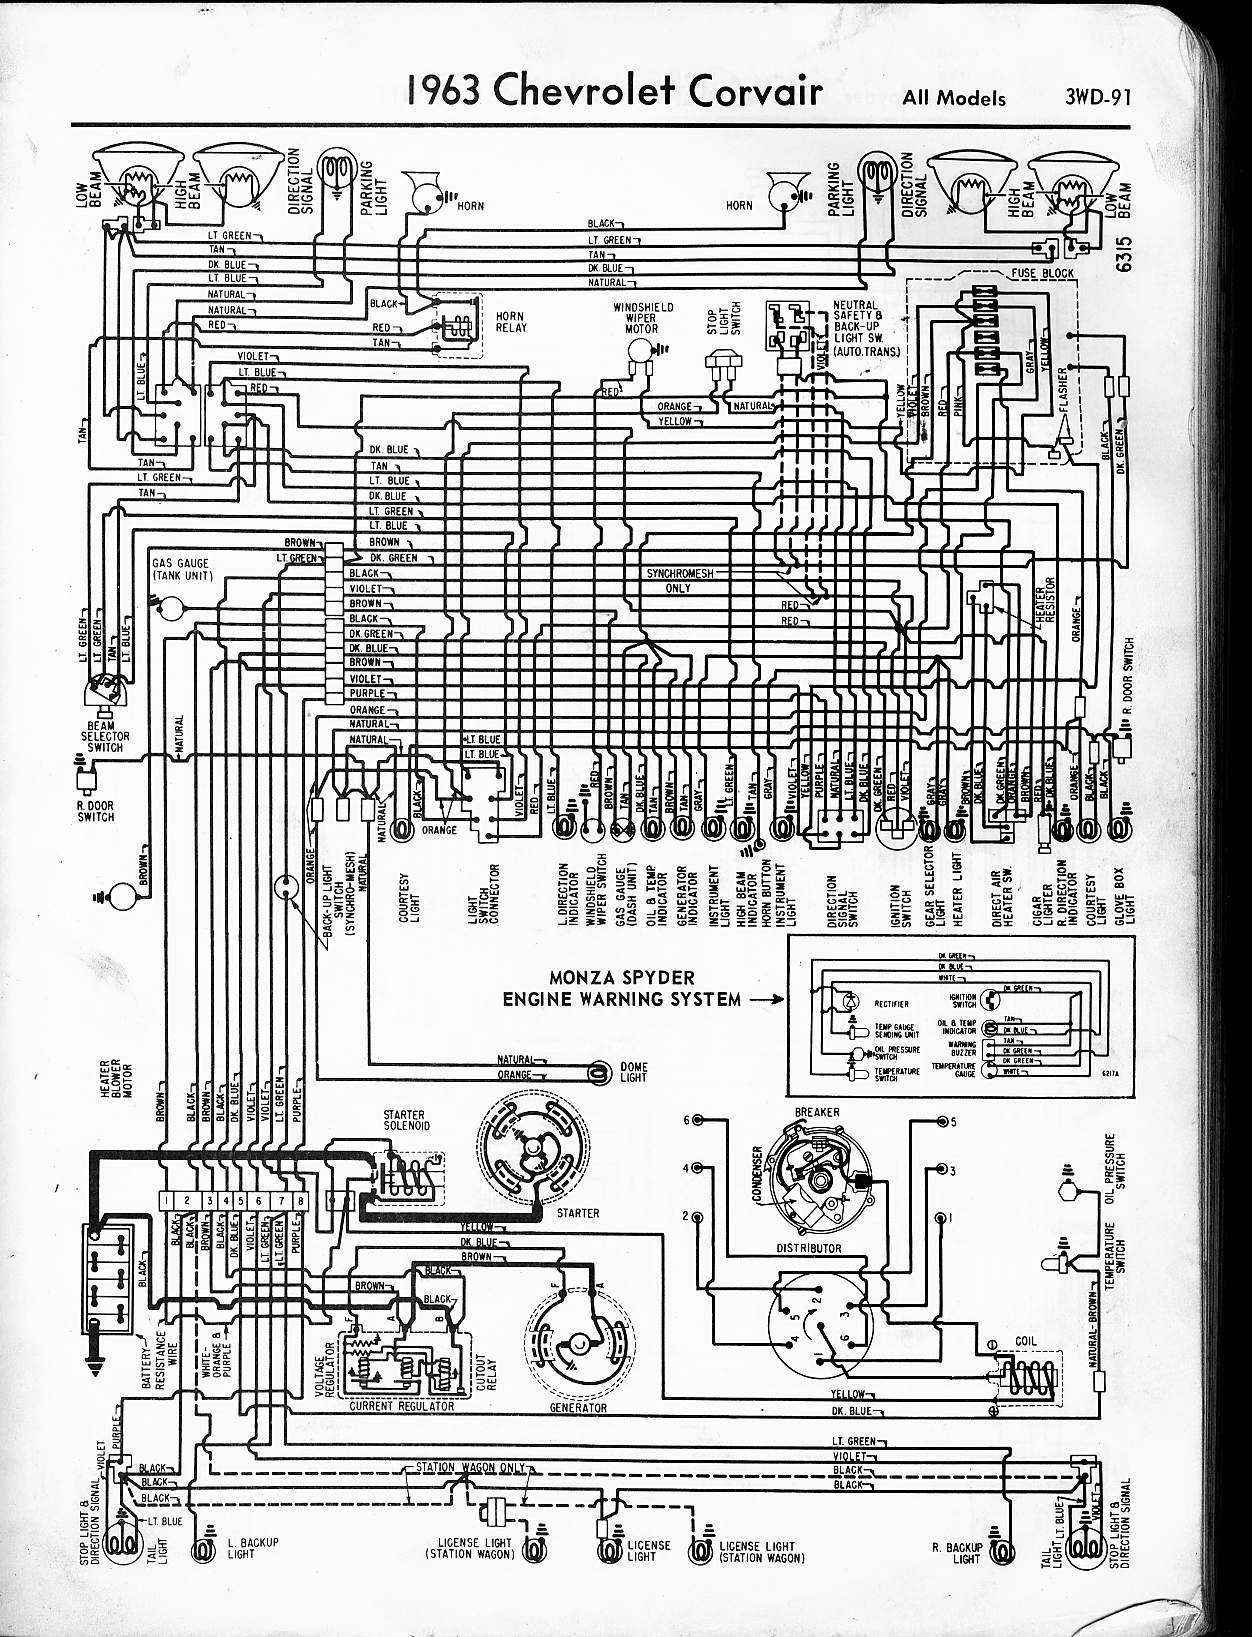 MWireChev63_3WD 091 57 65 chevy wiring diagrams 1963 chevrolet c10 wiring diagram at soozxer.org